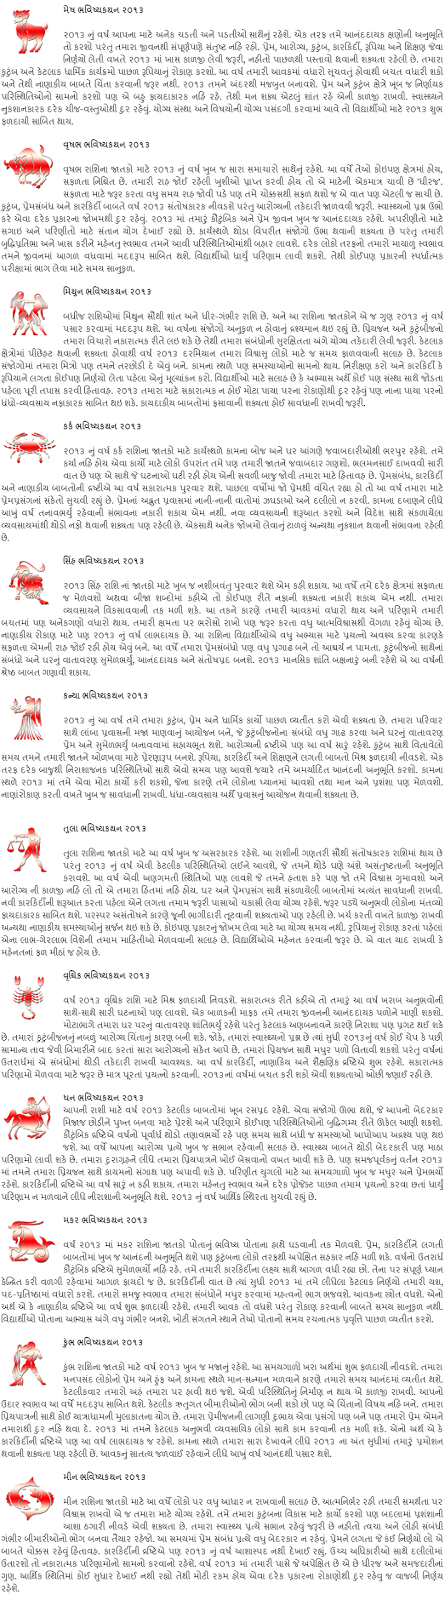 rashi bhavishya 2014 gujarati horoscope 2014 gujarati astrology 2014